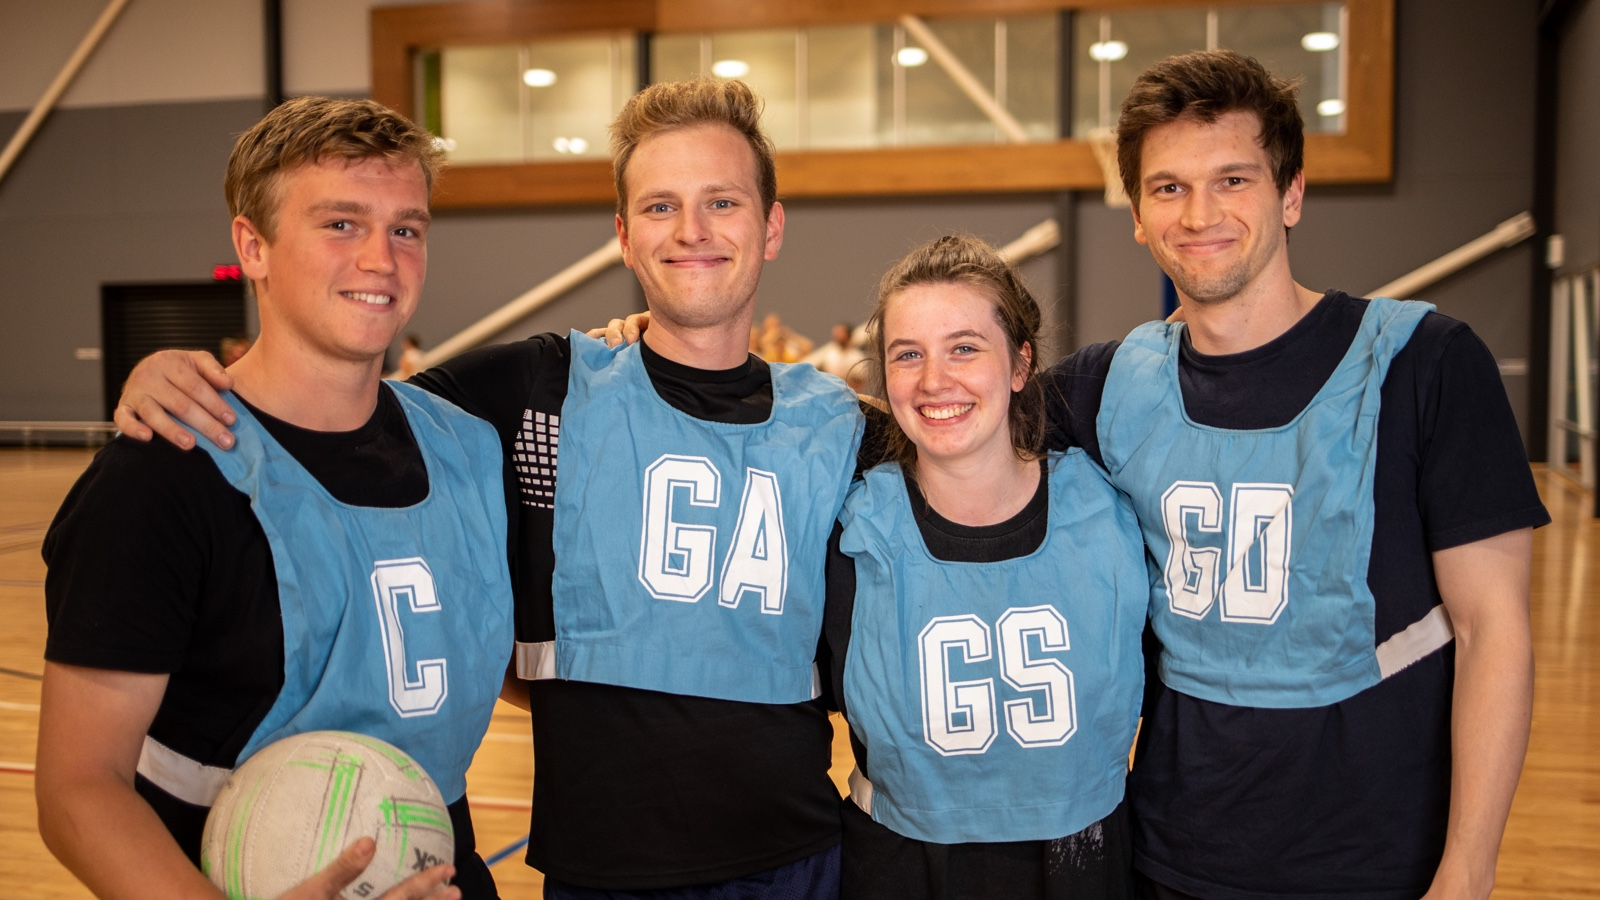 Four social Netball players stand on the side of the court